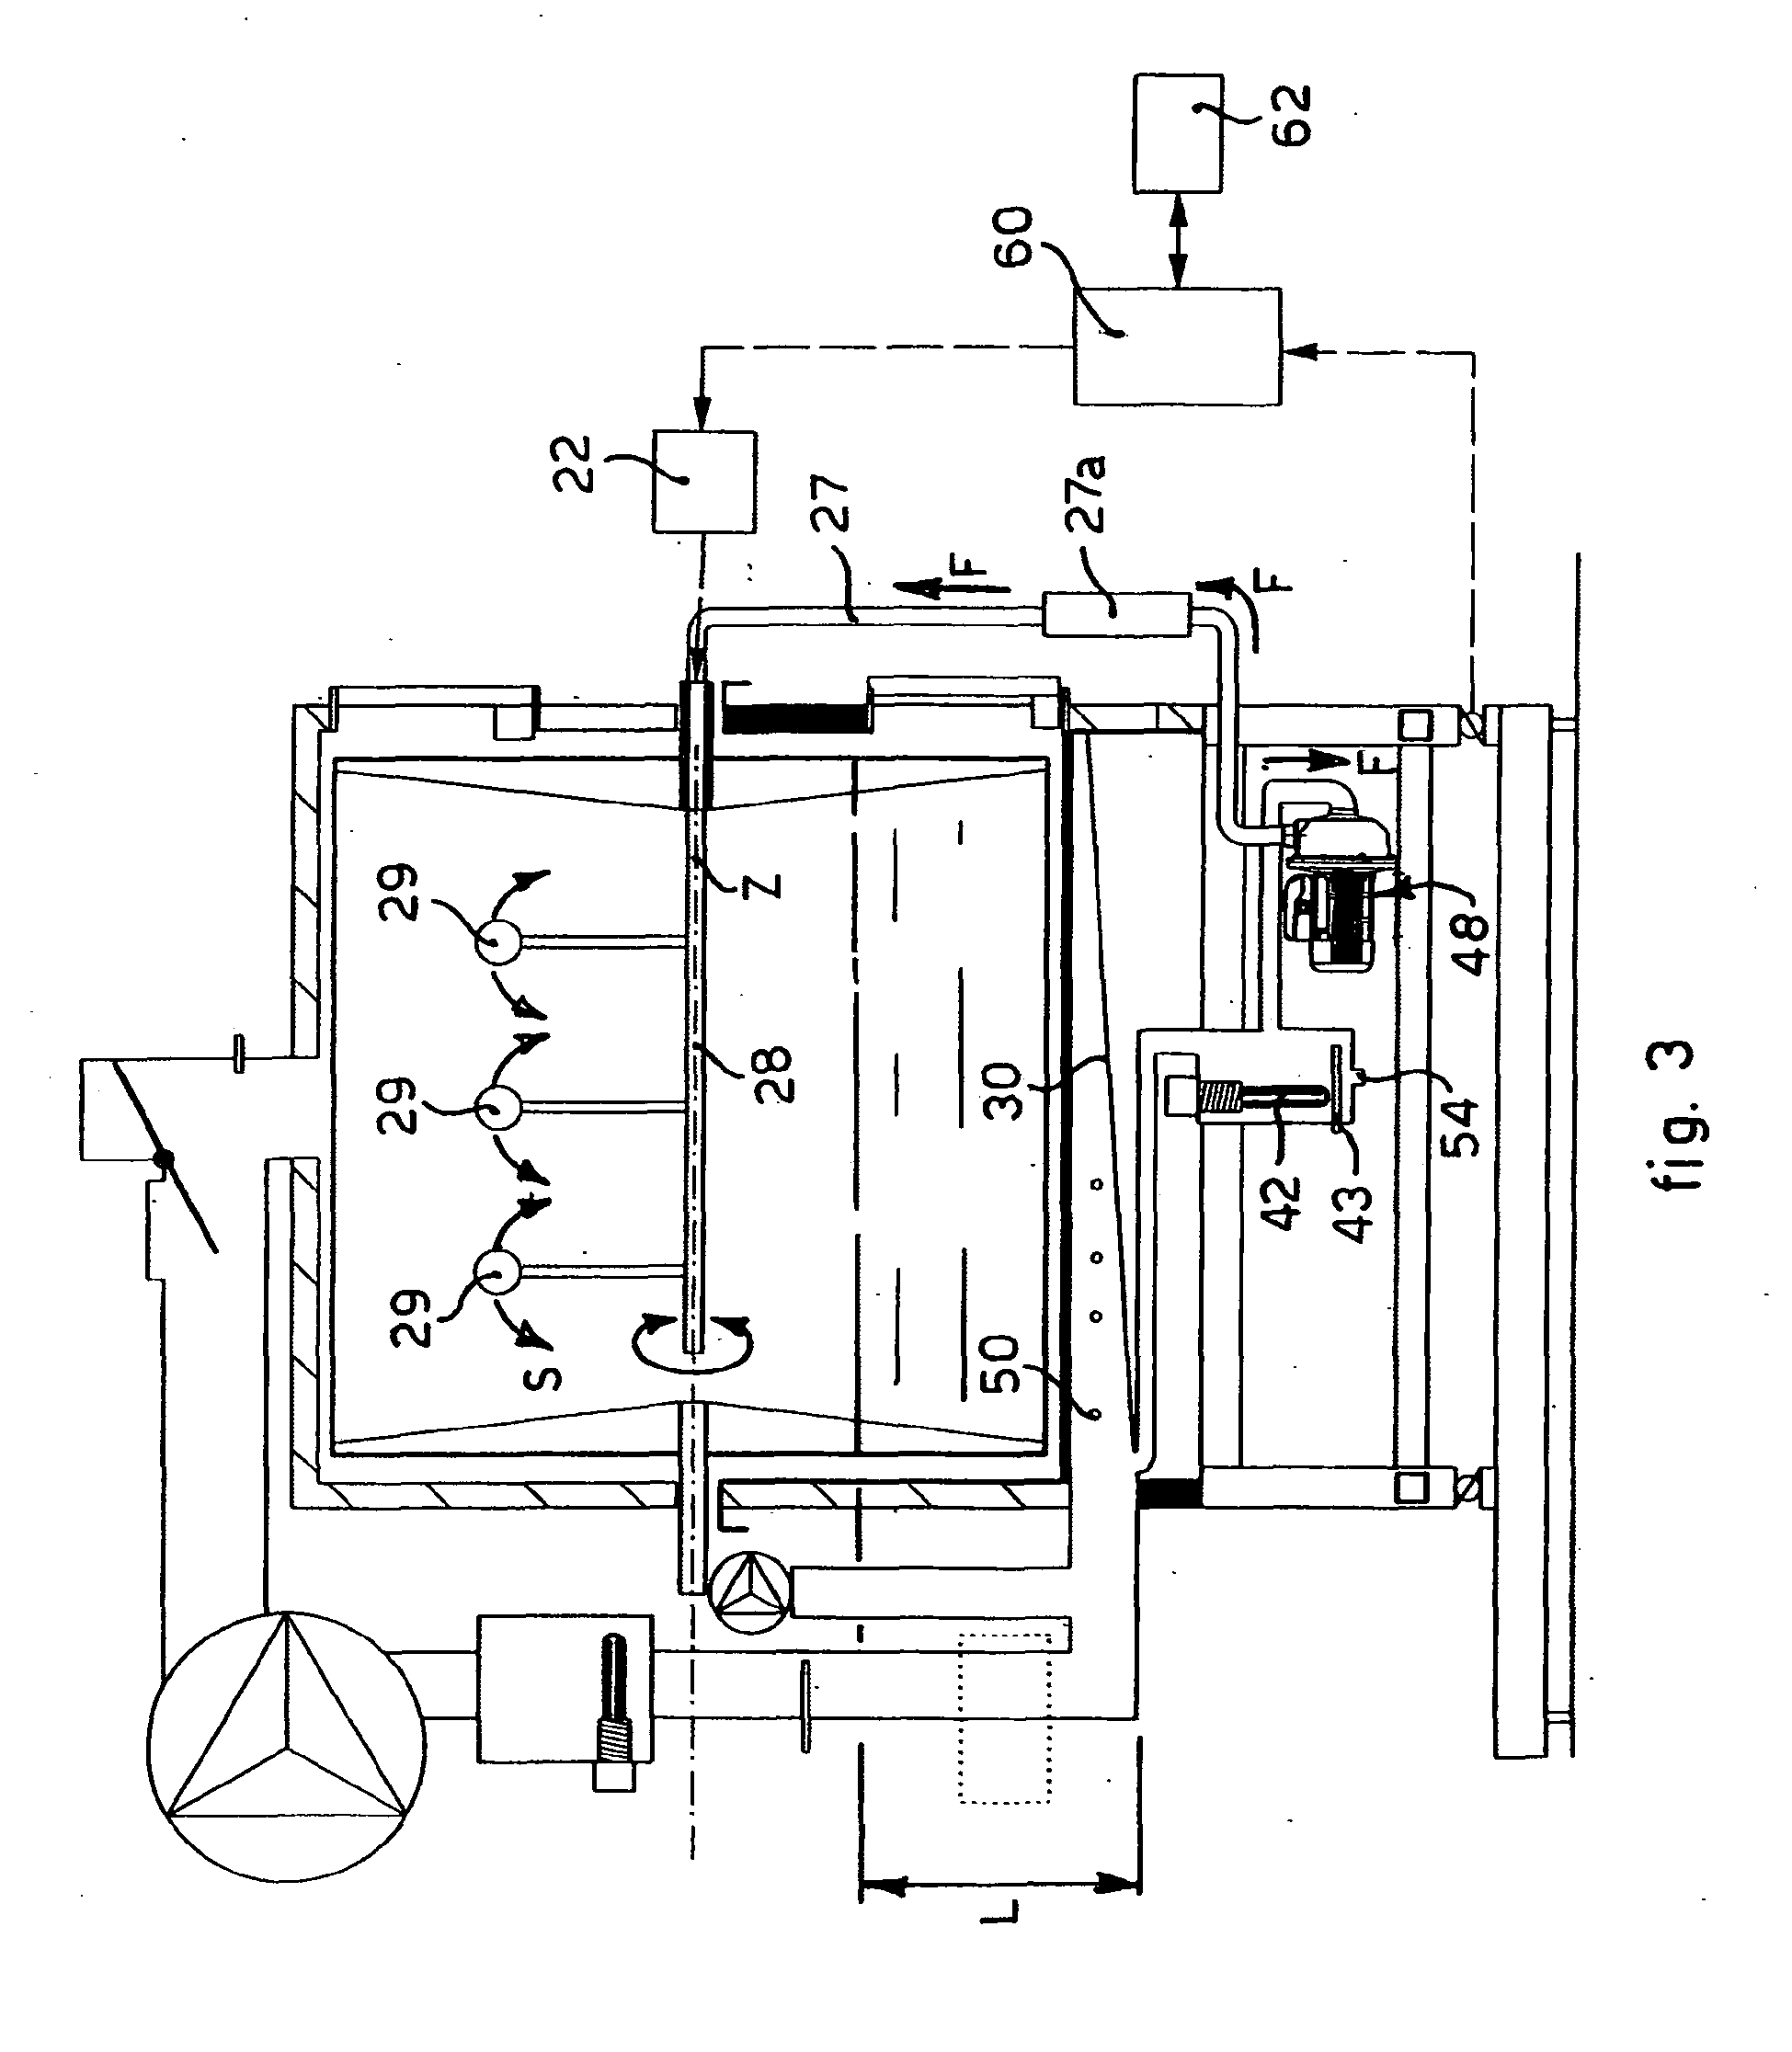 patent ep2377915a1 machine and method for malting barley